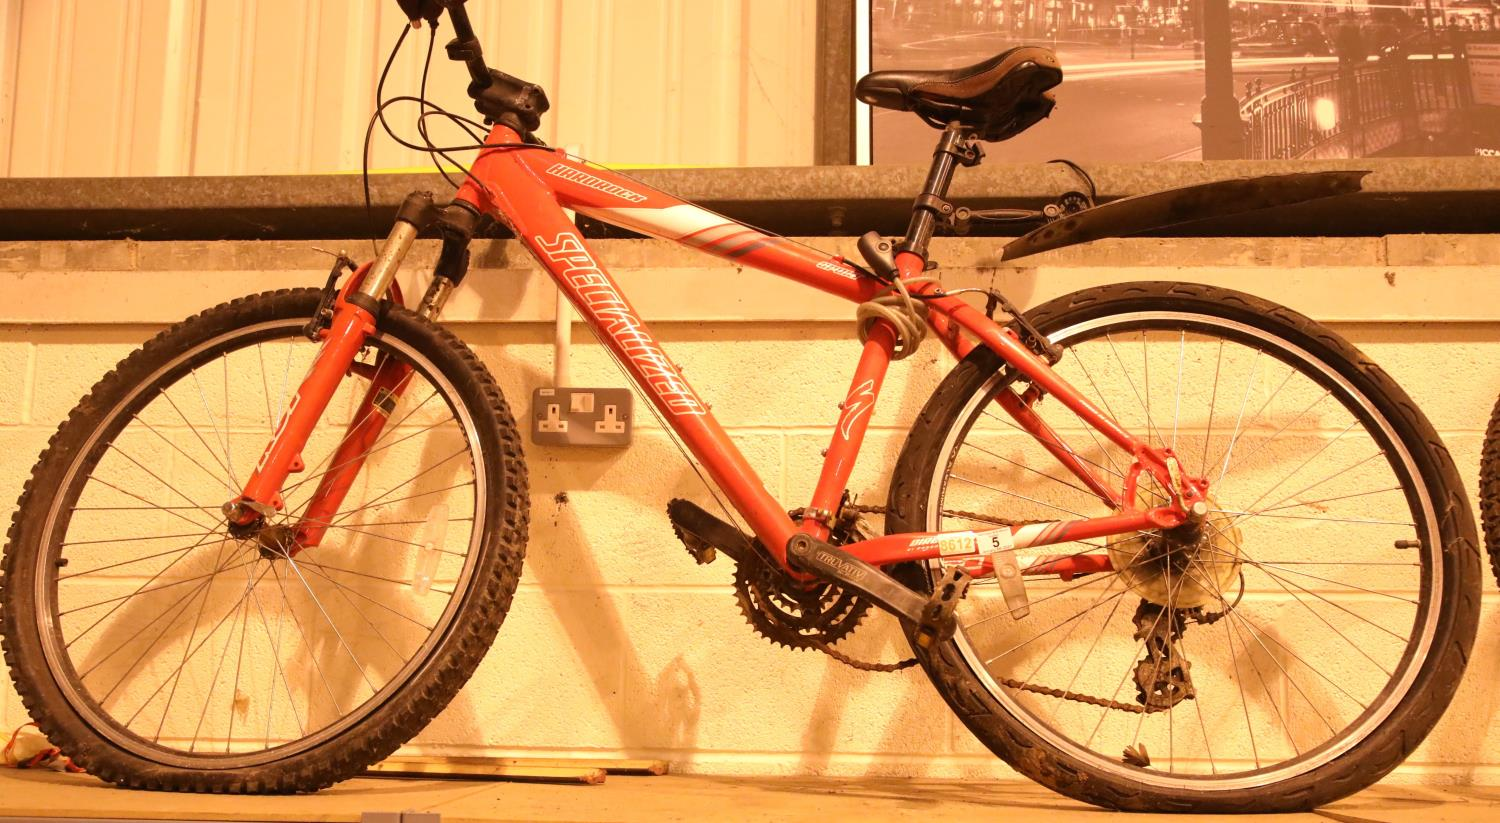 Gent specialised Hard Rock mountain bike 24 speed, 16'' frame. Not available for in-house P&P